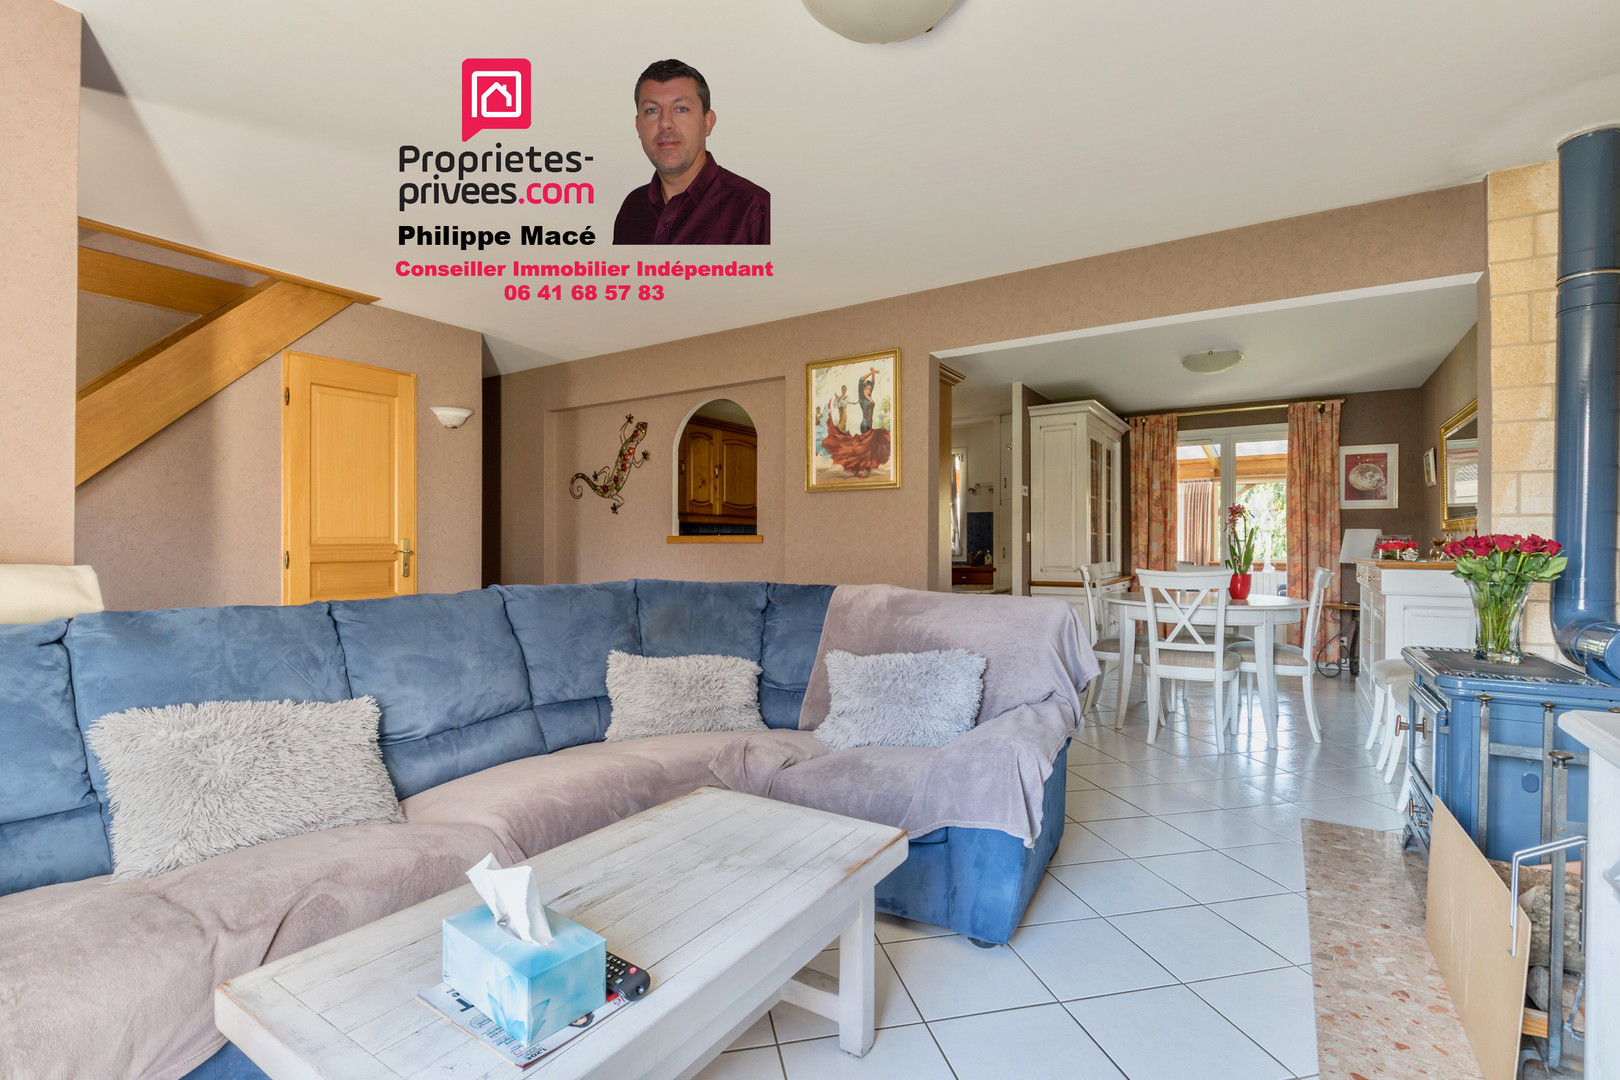 A-vendre-maison-saint-pathus-immonord77-salon